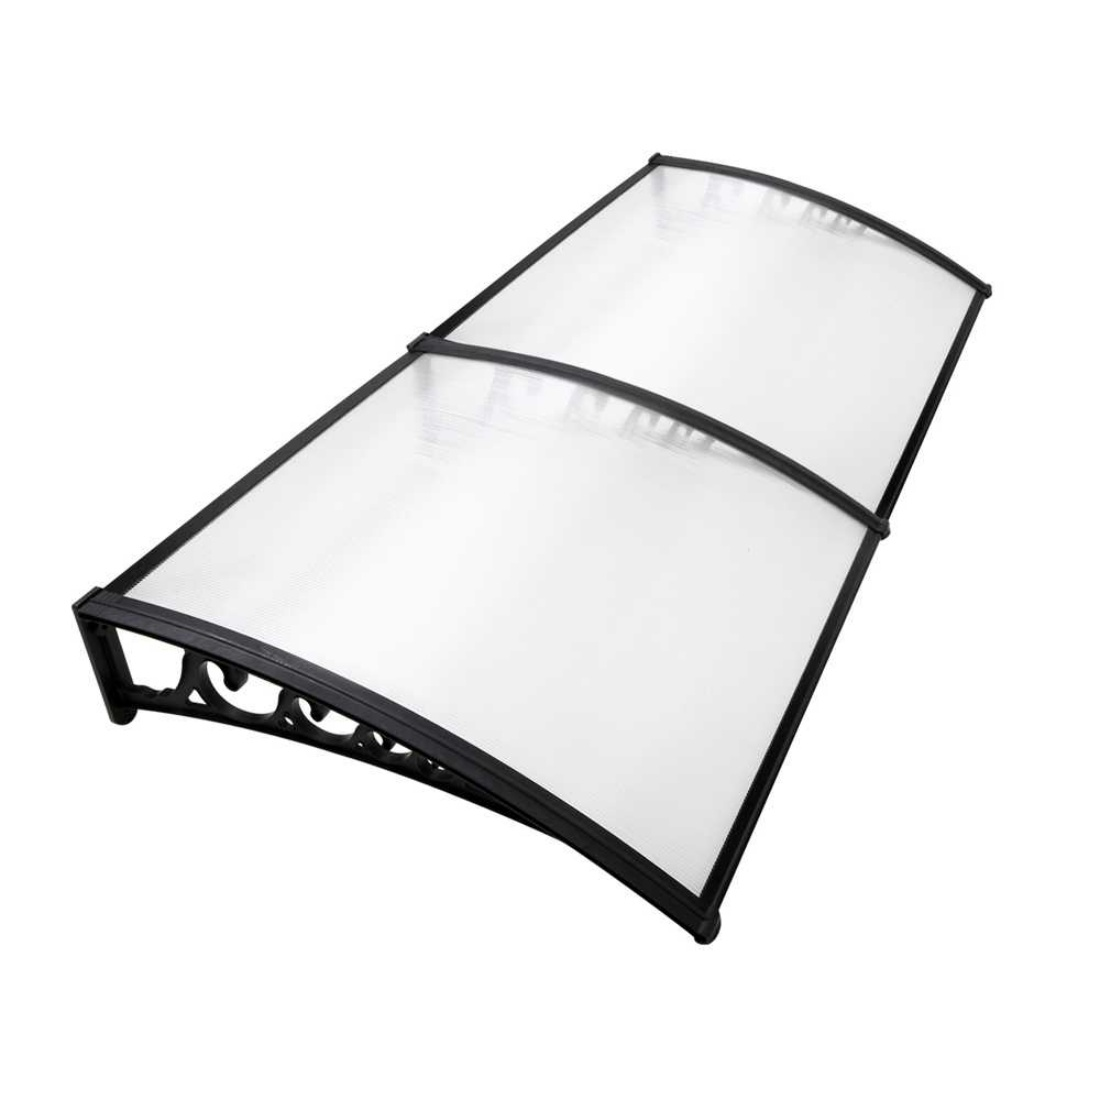 Window Awning DIY 1m x 2m Transparent For UV Sun and Rain Outdoor Protection Cover